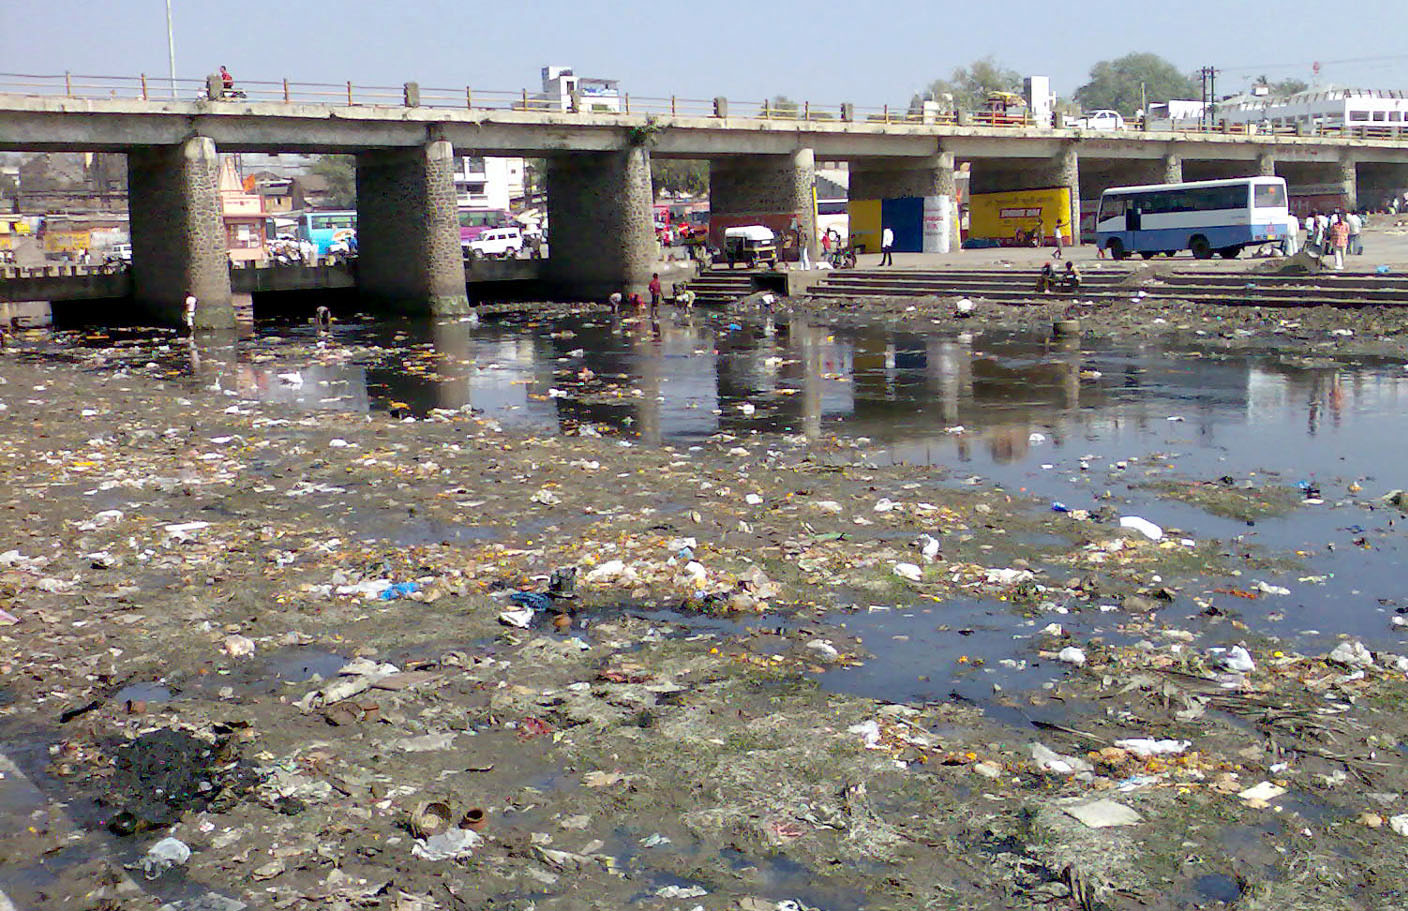 Ganga river pollution pictures #aintreeladiesday Instagram photos and videos